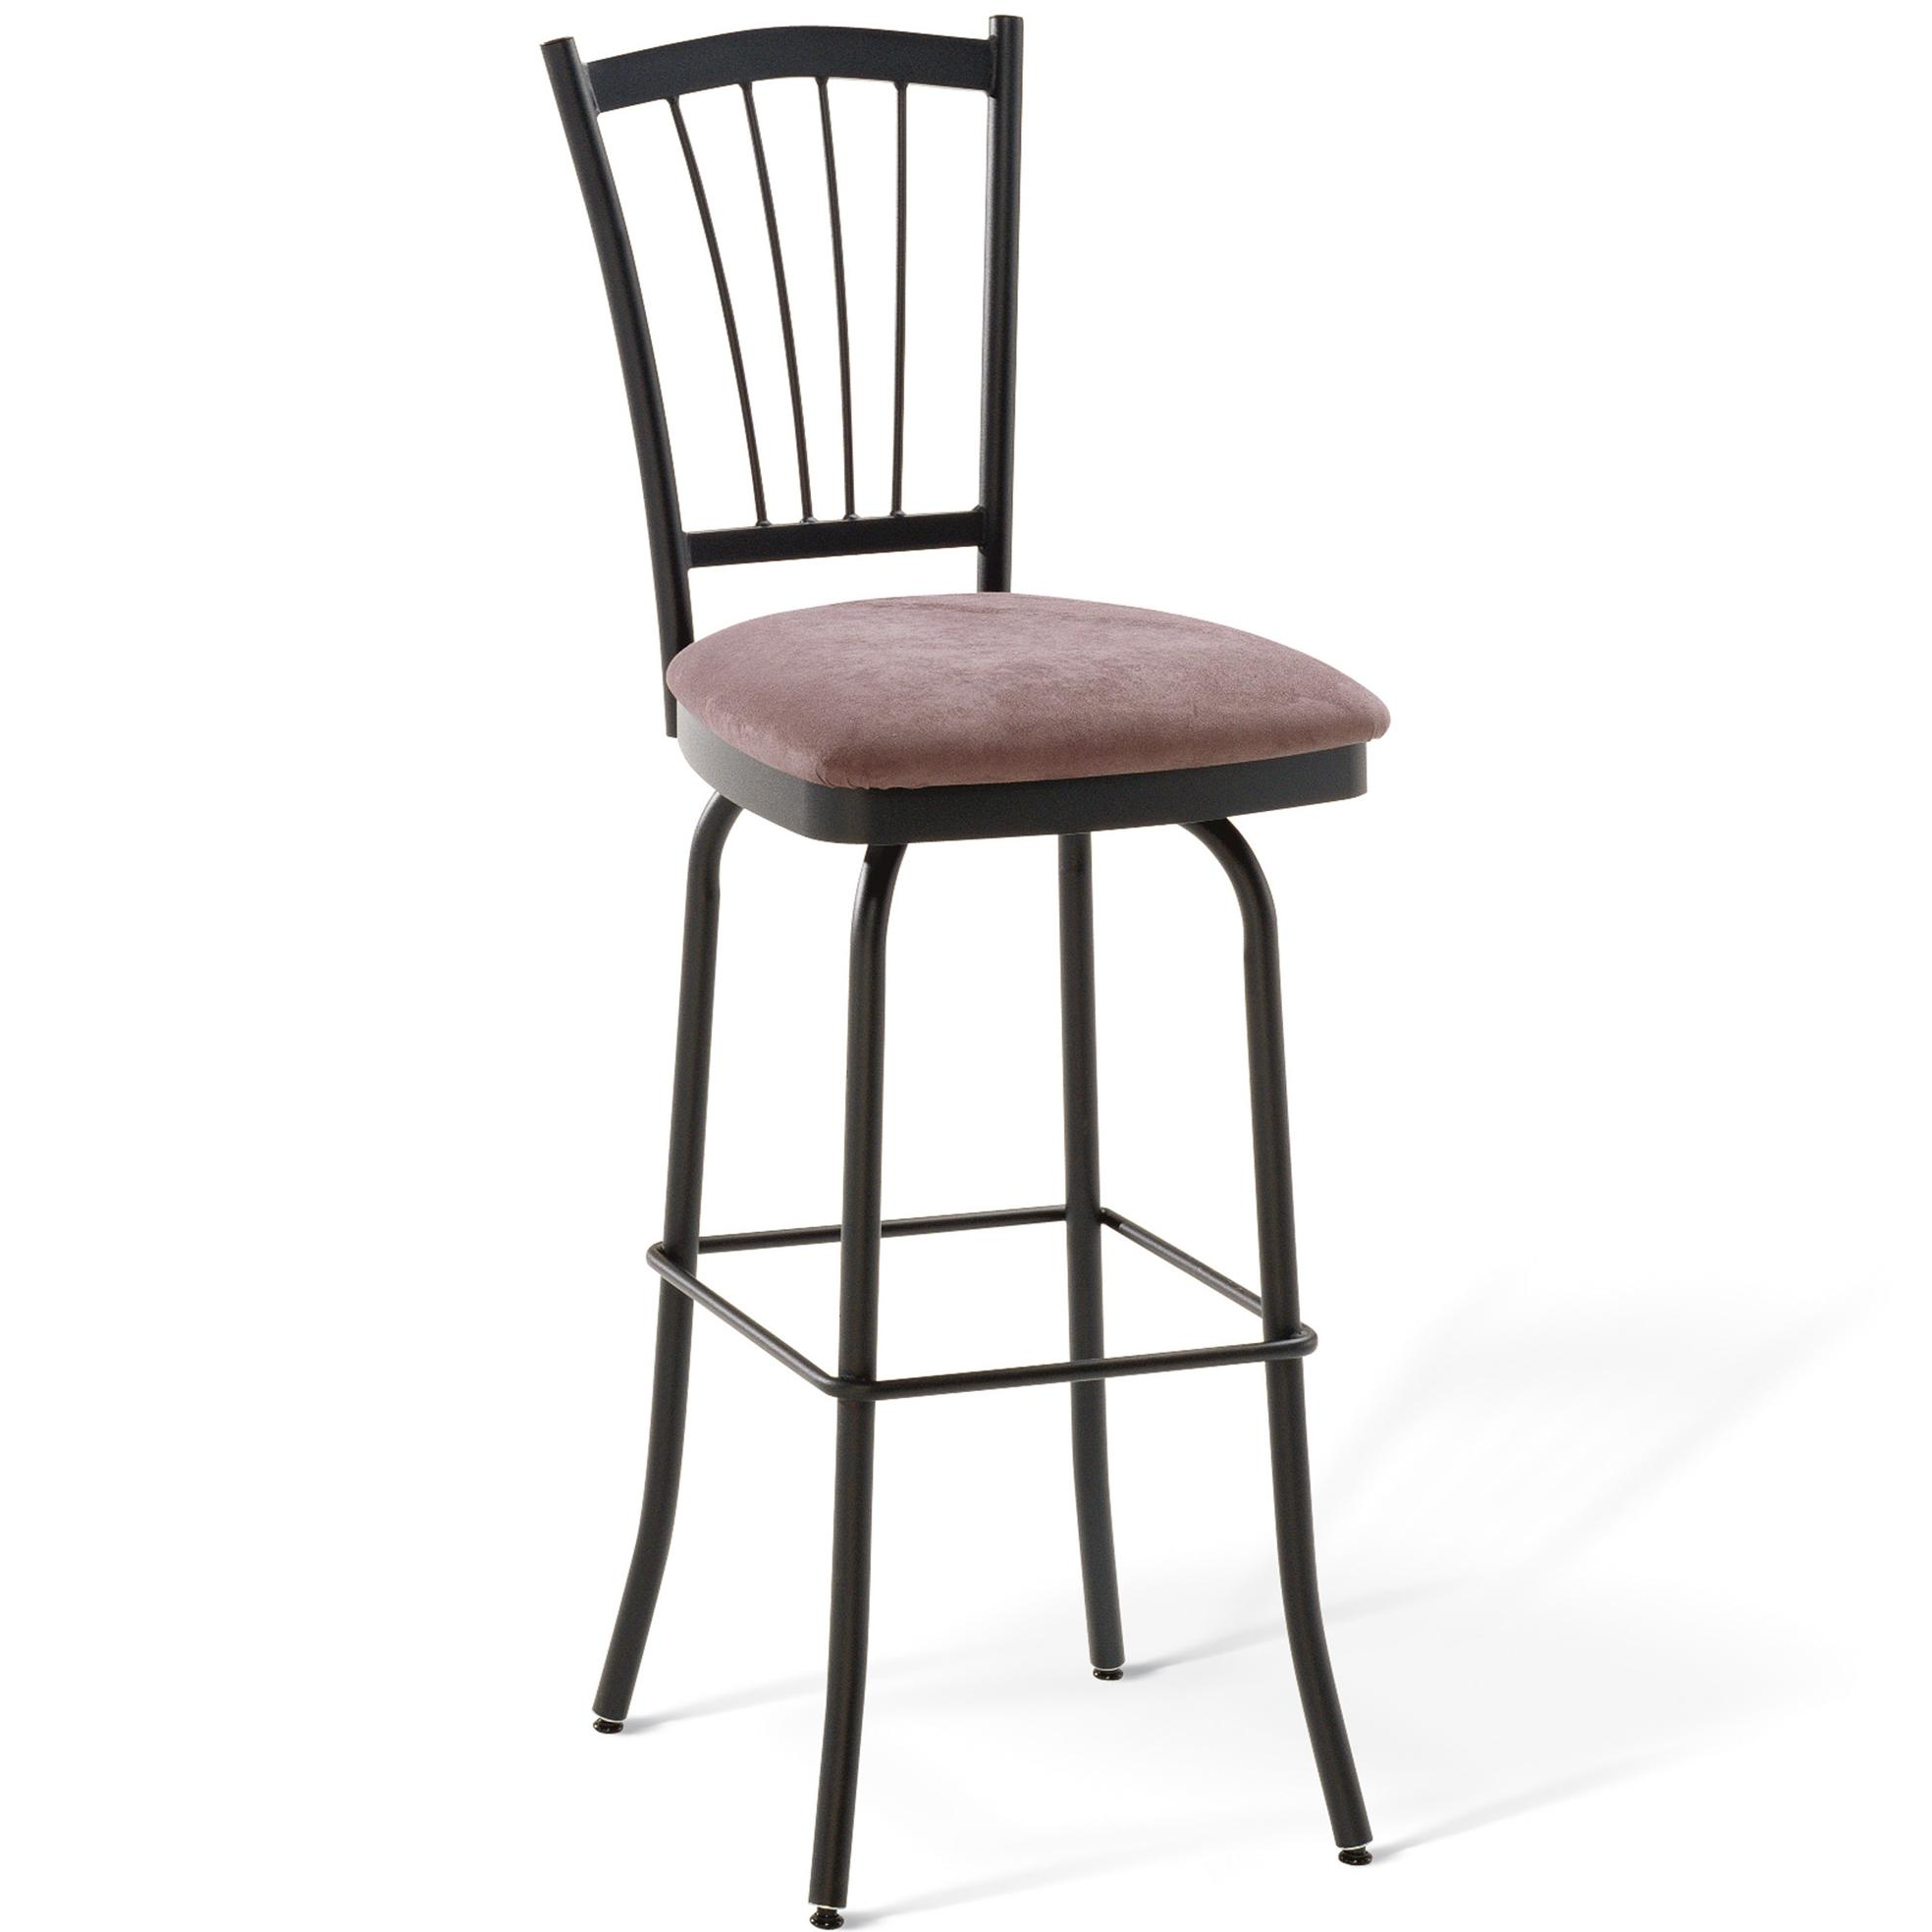 "Amisco Countryside 30"" Naomi Bar Height Swivel Stool - Item Number: 41467 30"